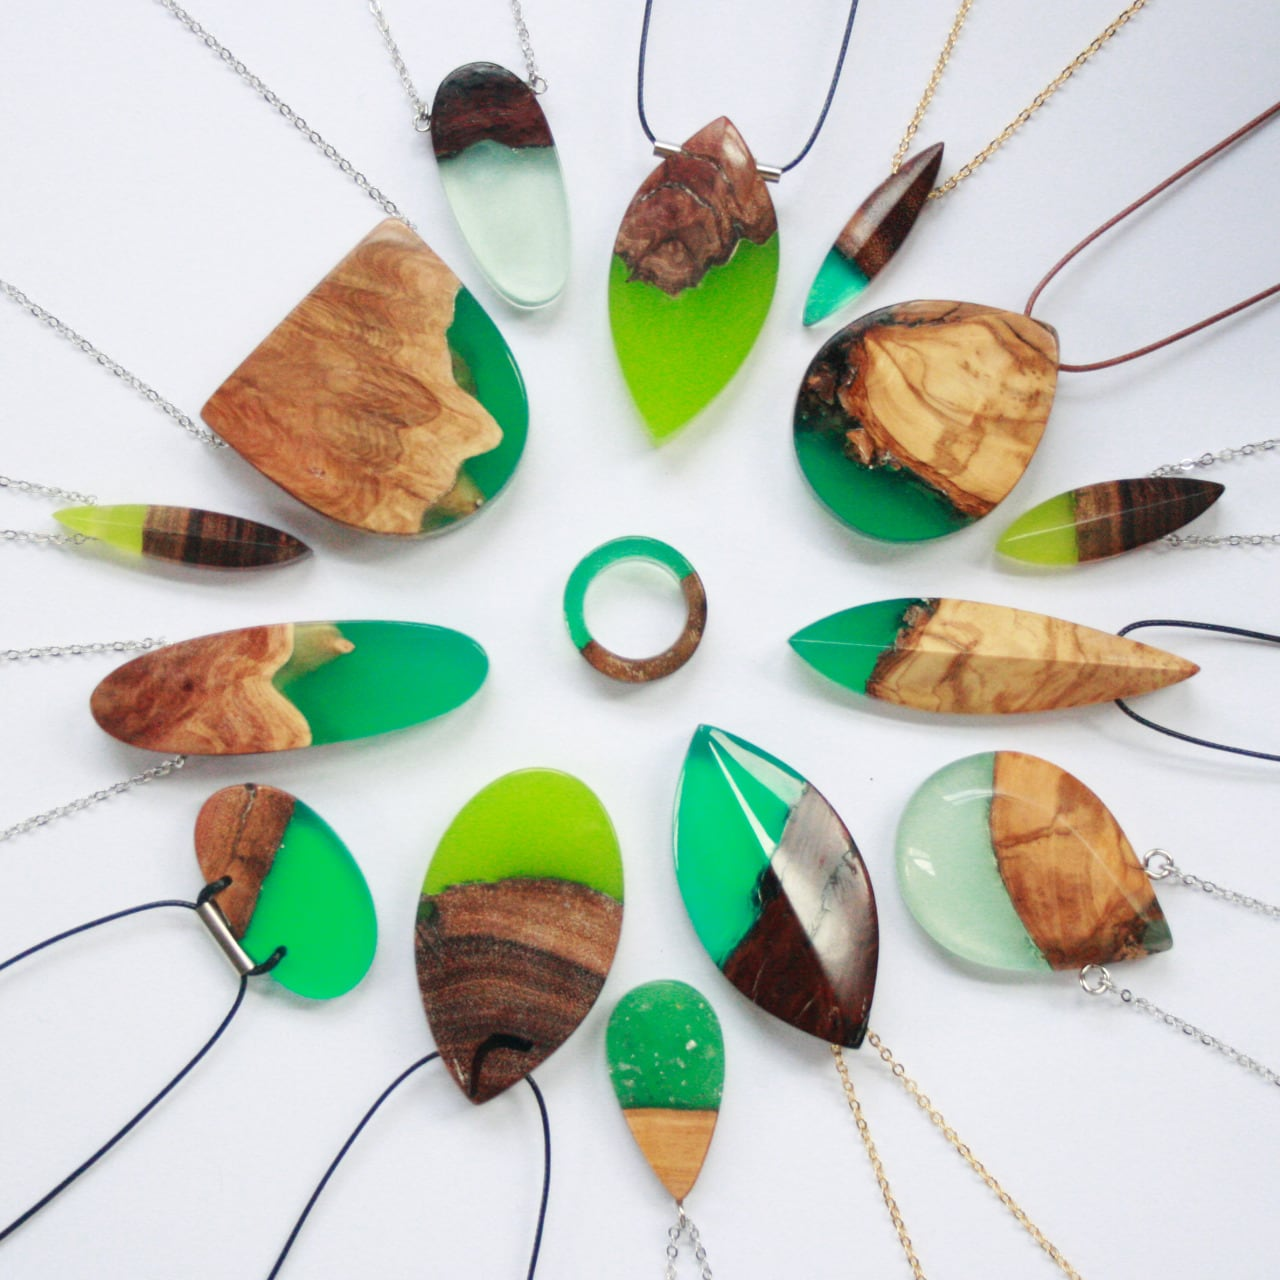 Designer Transforms Jagged Wood Fragments  with Resin into Splendid Accessories -resin, jewelry, fashion